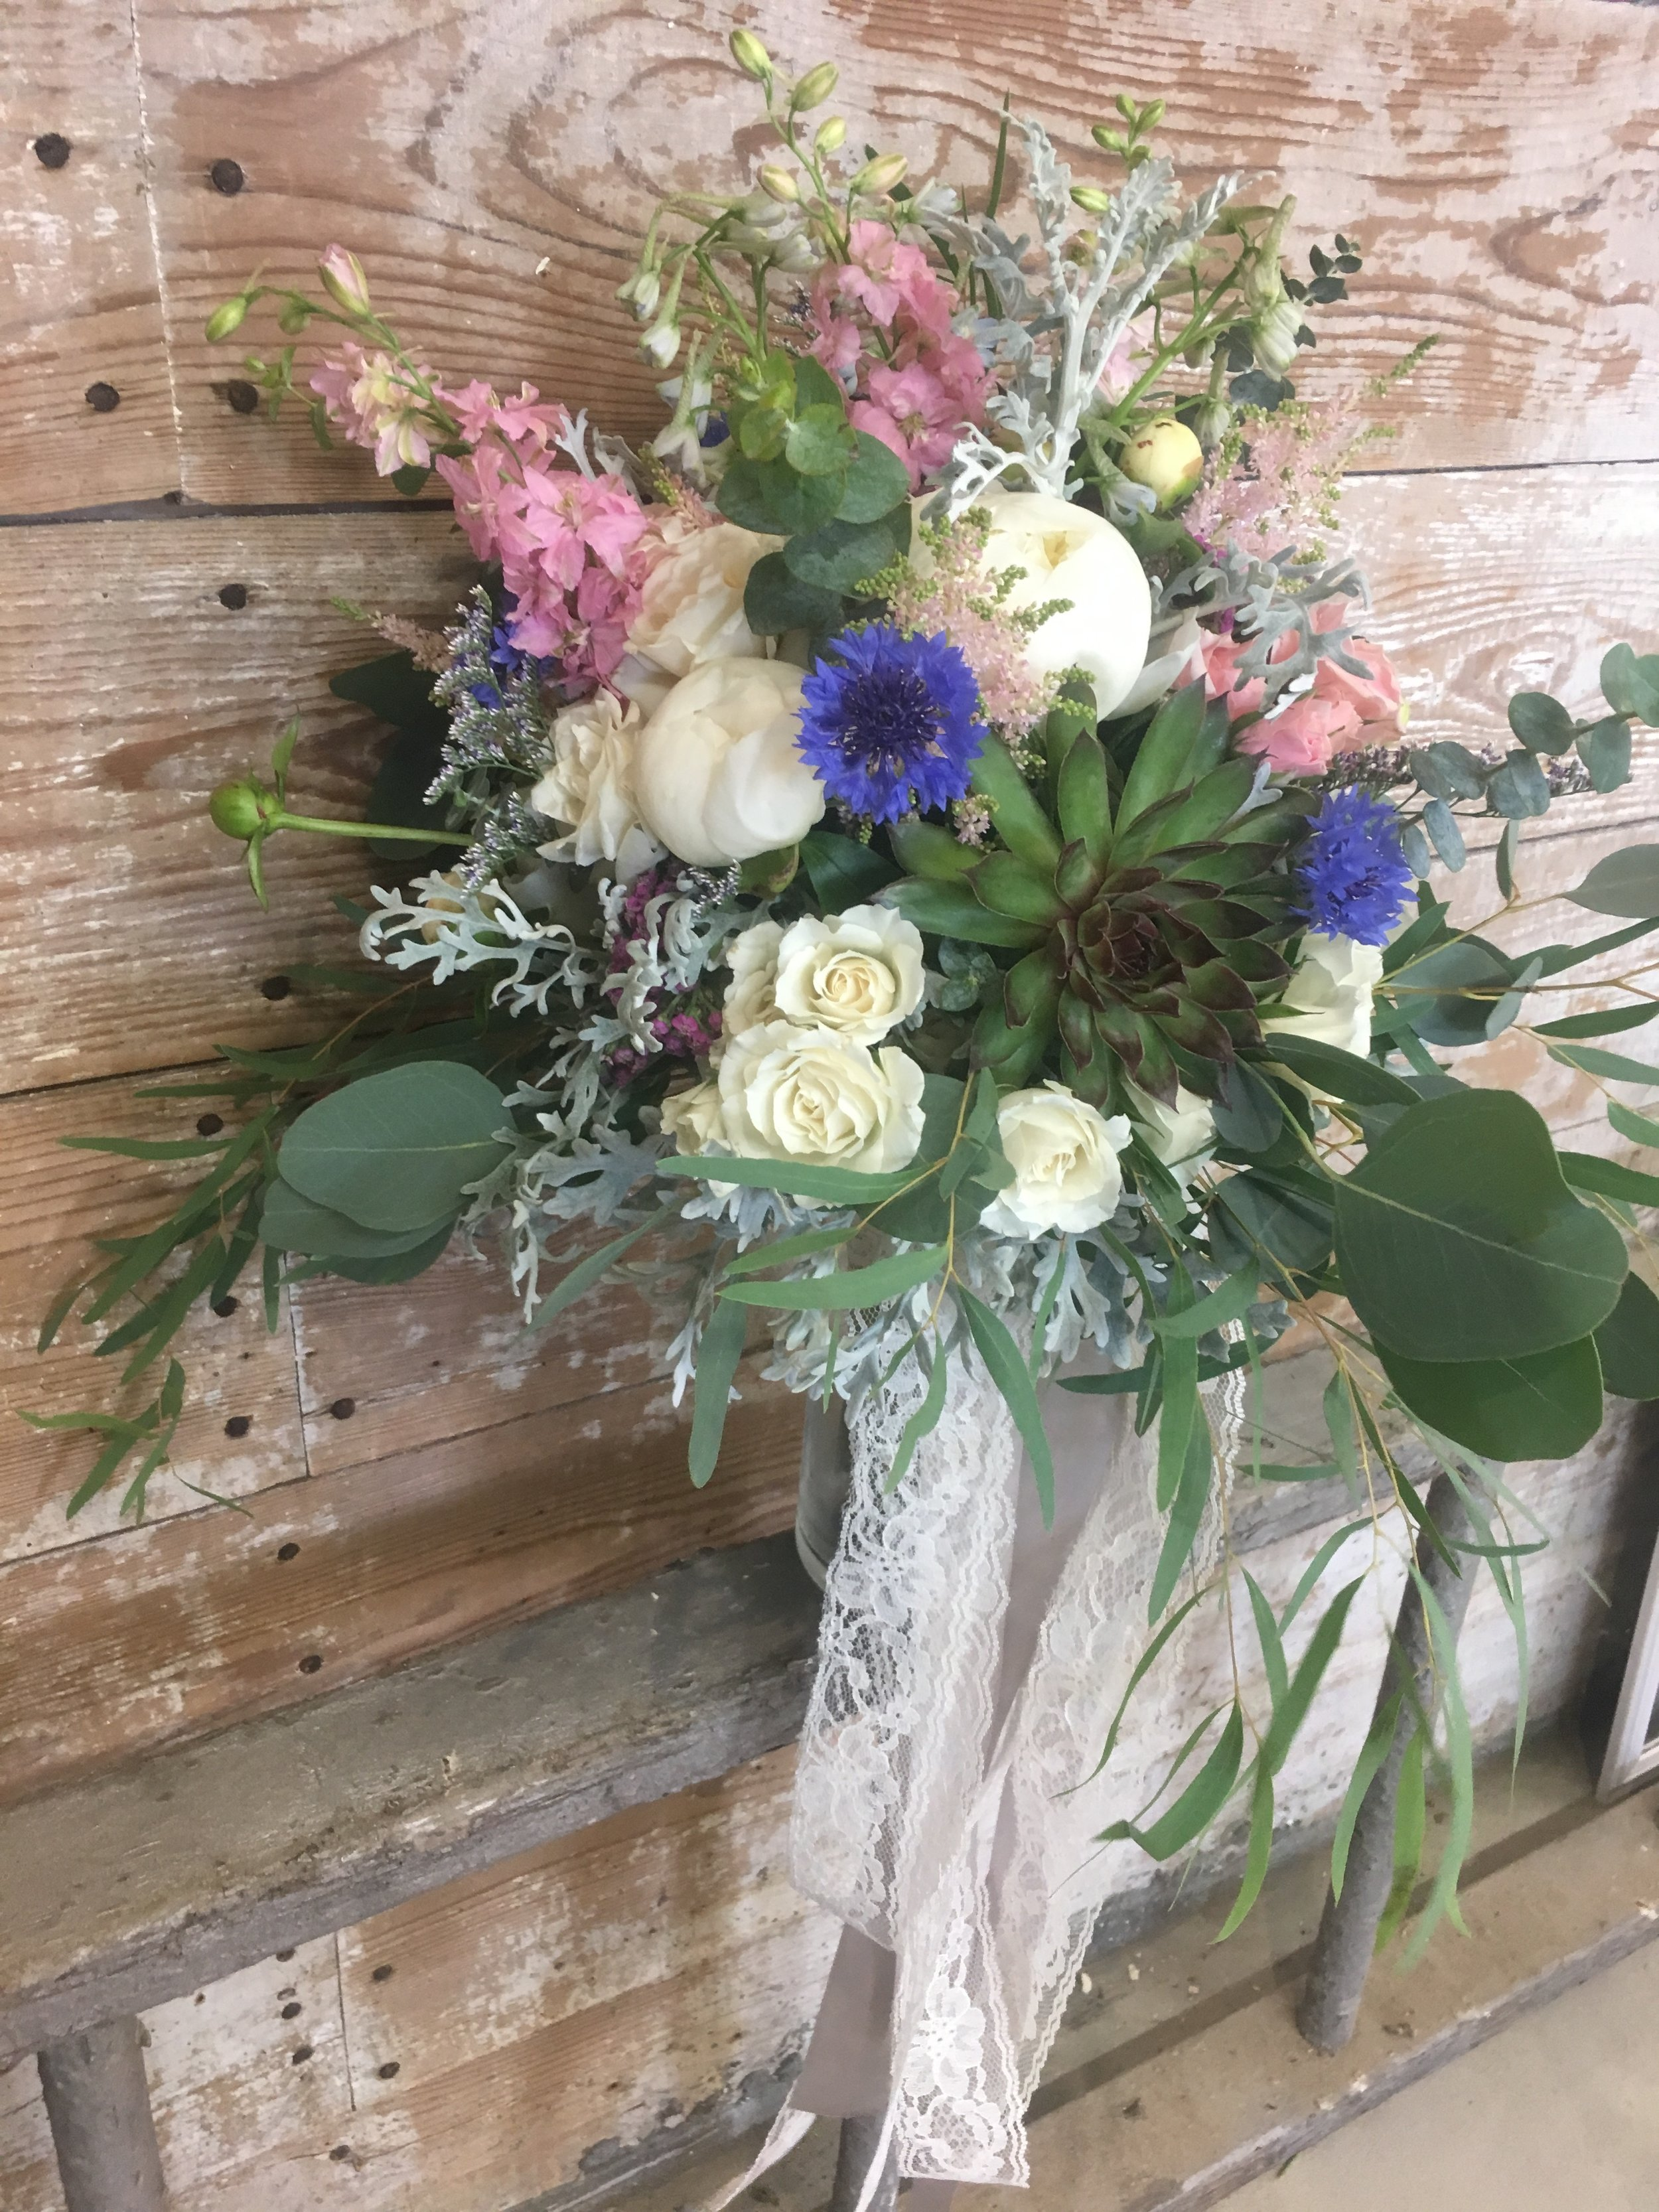 Every boho bride needs wildflowers, succulents, and lace ribbon!!